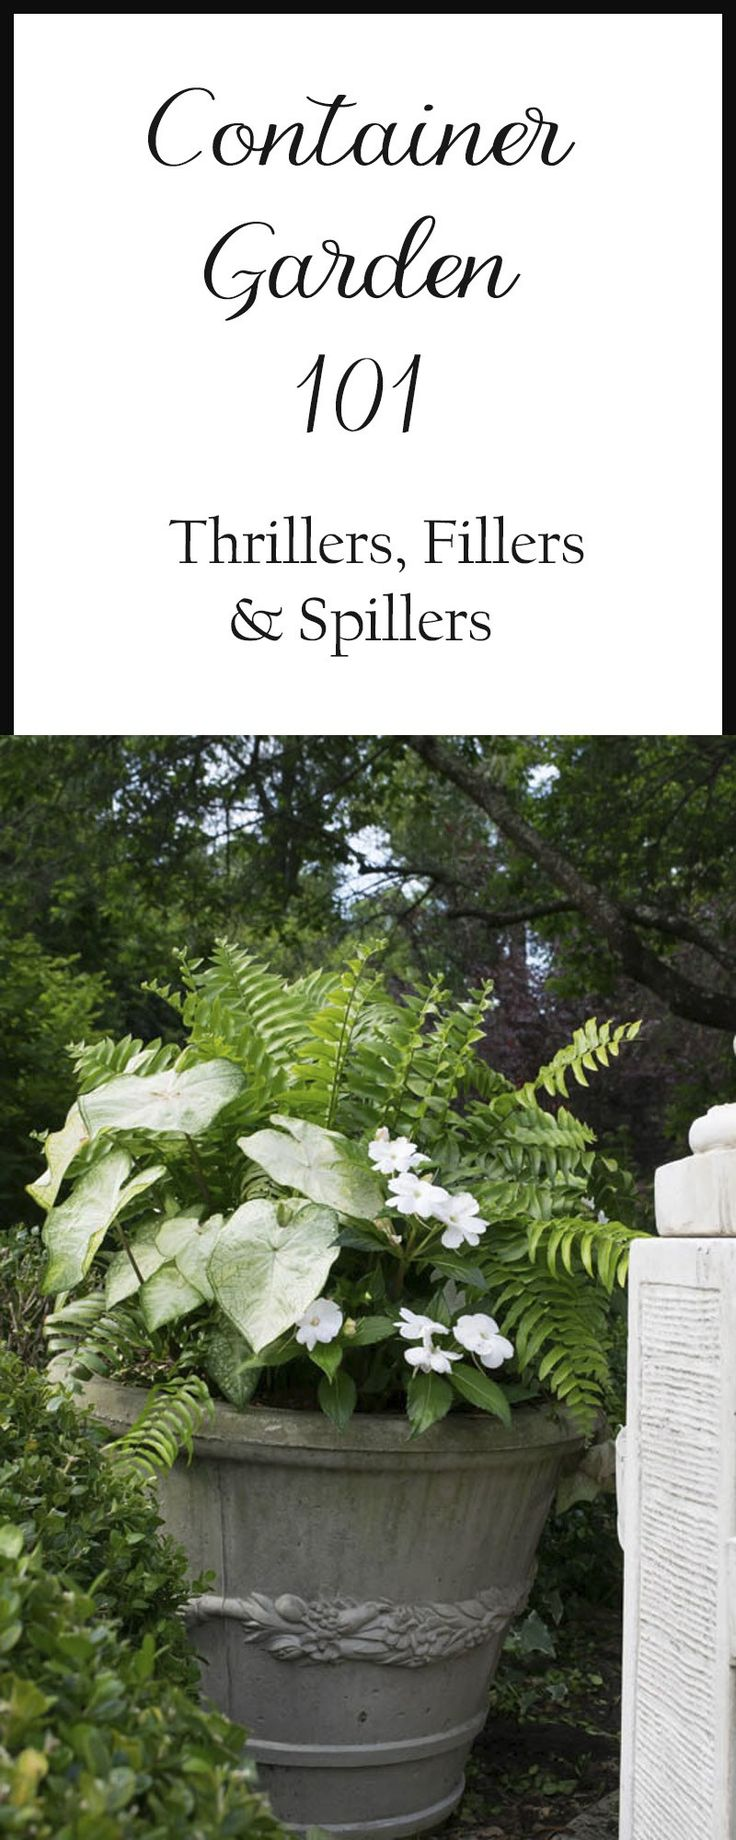 The basics of container gardening: Thrillers, Fillers and Spillers. Lists of suggested plants and plant combination recipes and examples.